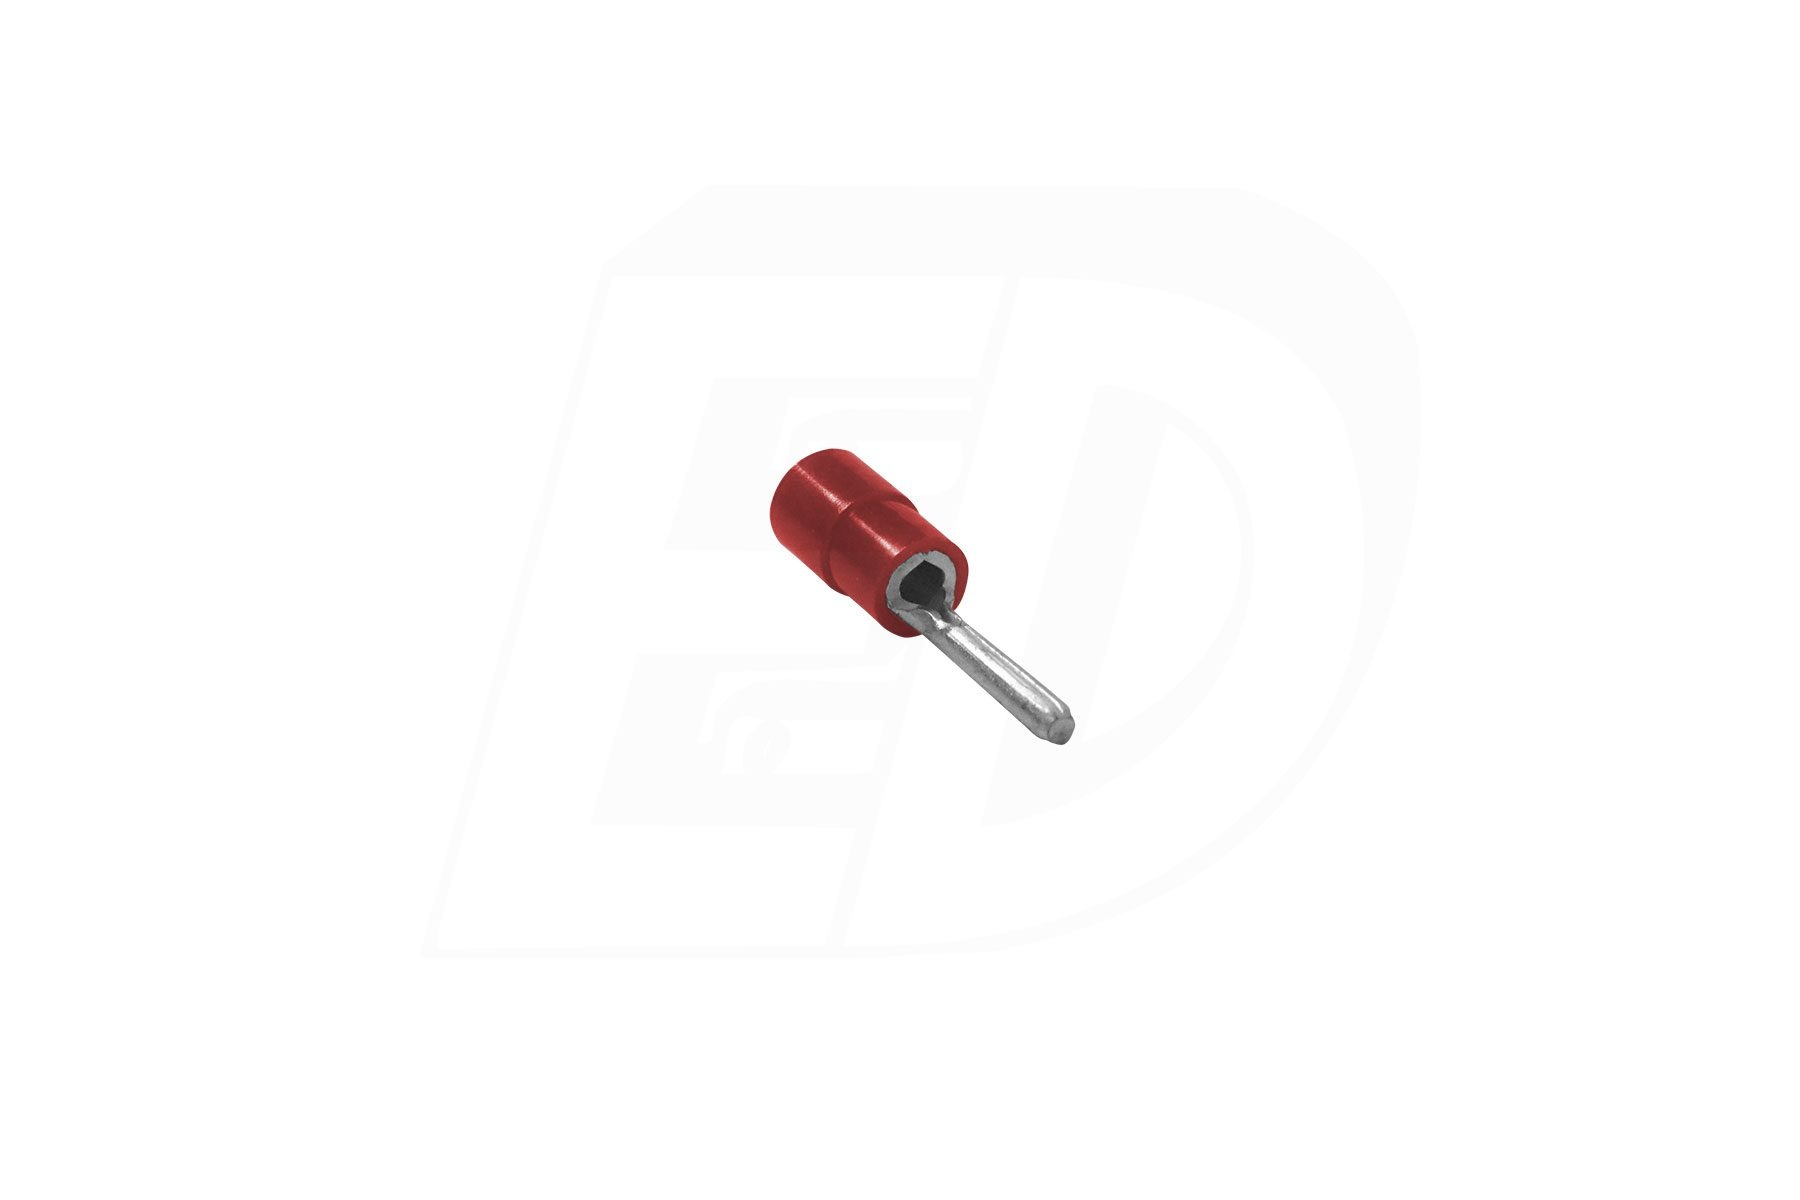 Butted Seam Vinyl Insulated Pin Terminals 22 - 16 AWG